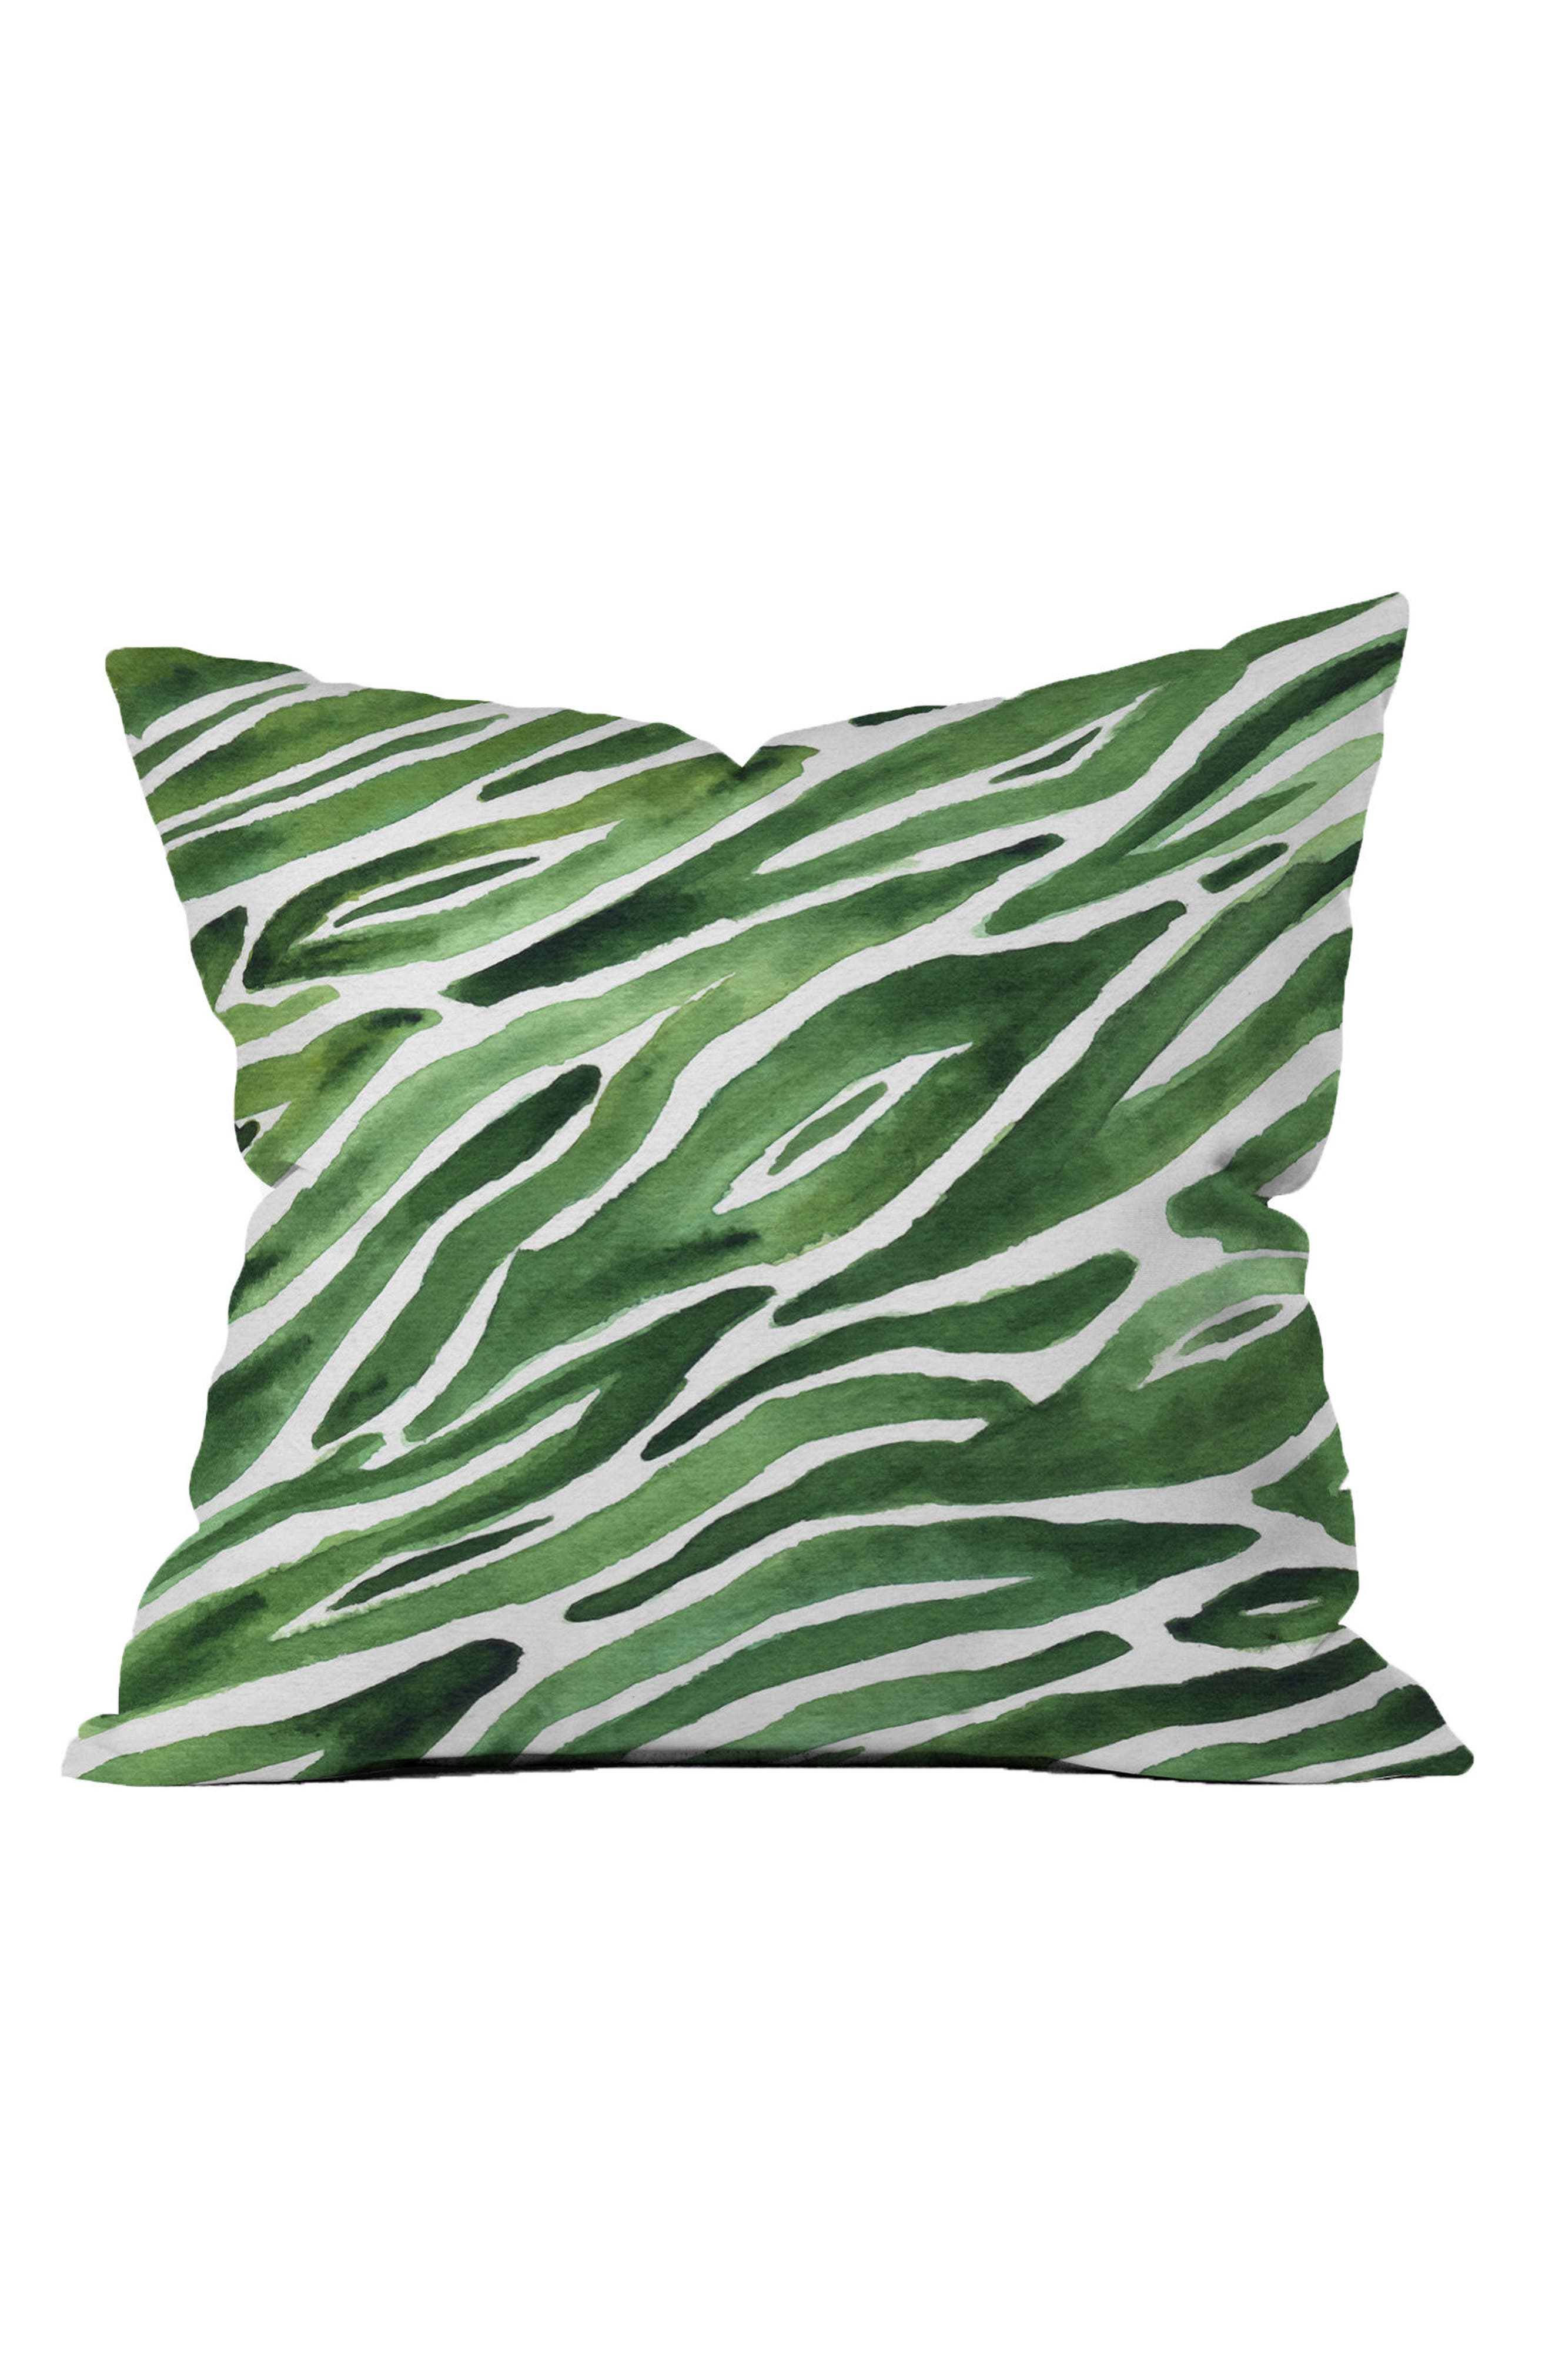 DENY DESIGNS,                             Elena Blanco Accent Pillow,                             Main thumbnail 1, color,                             300